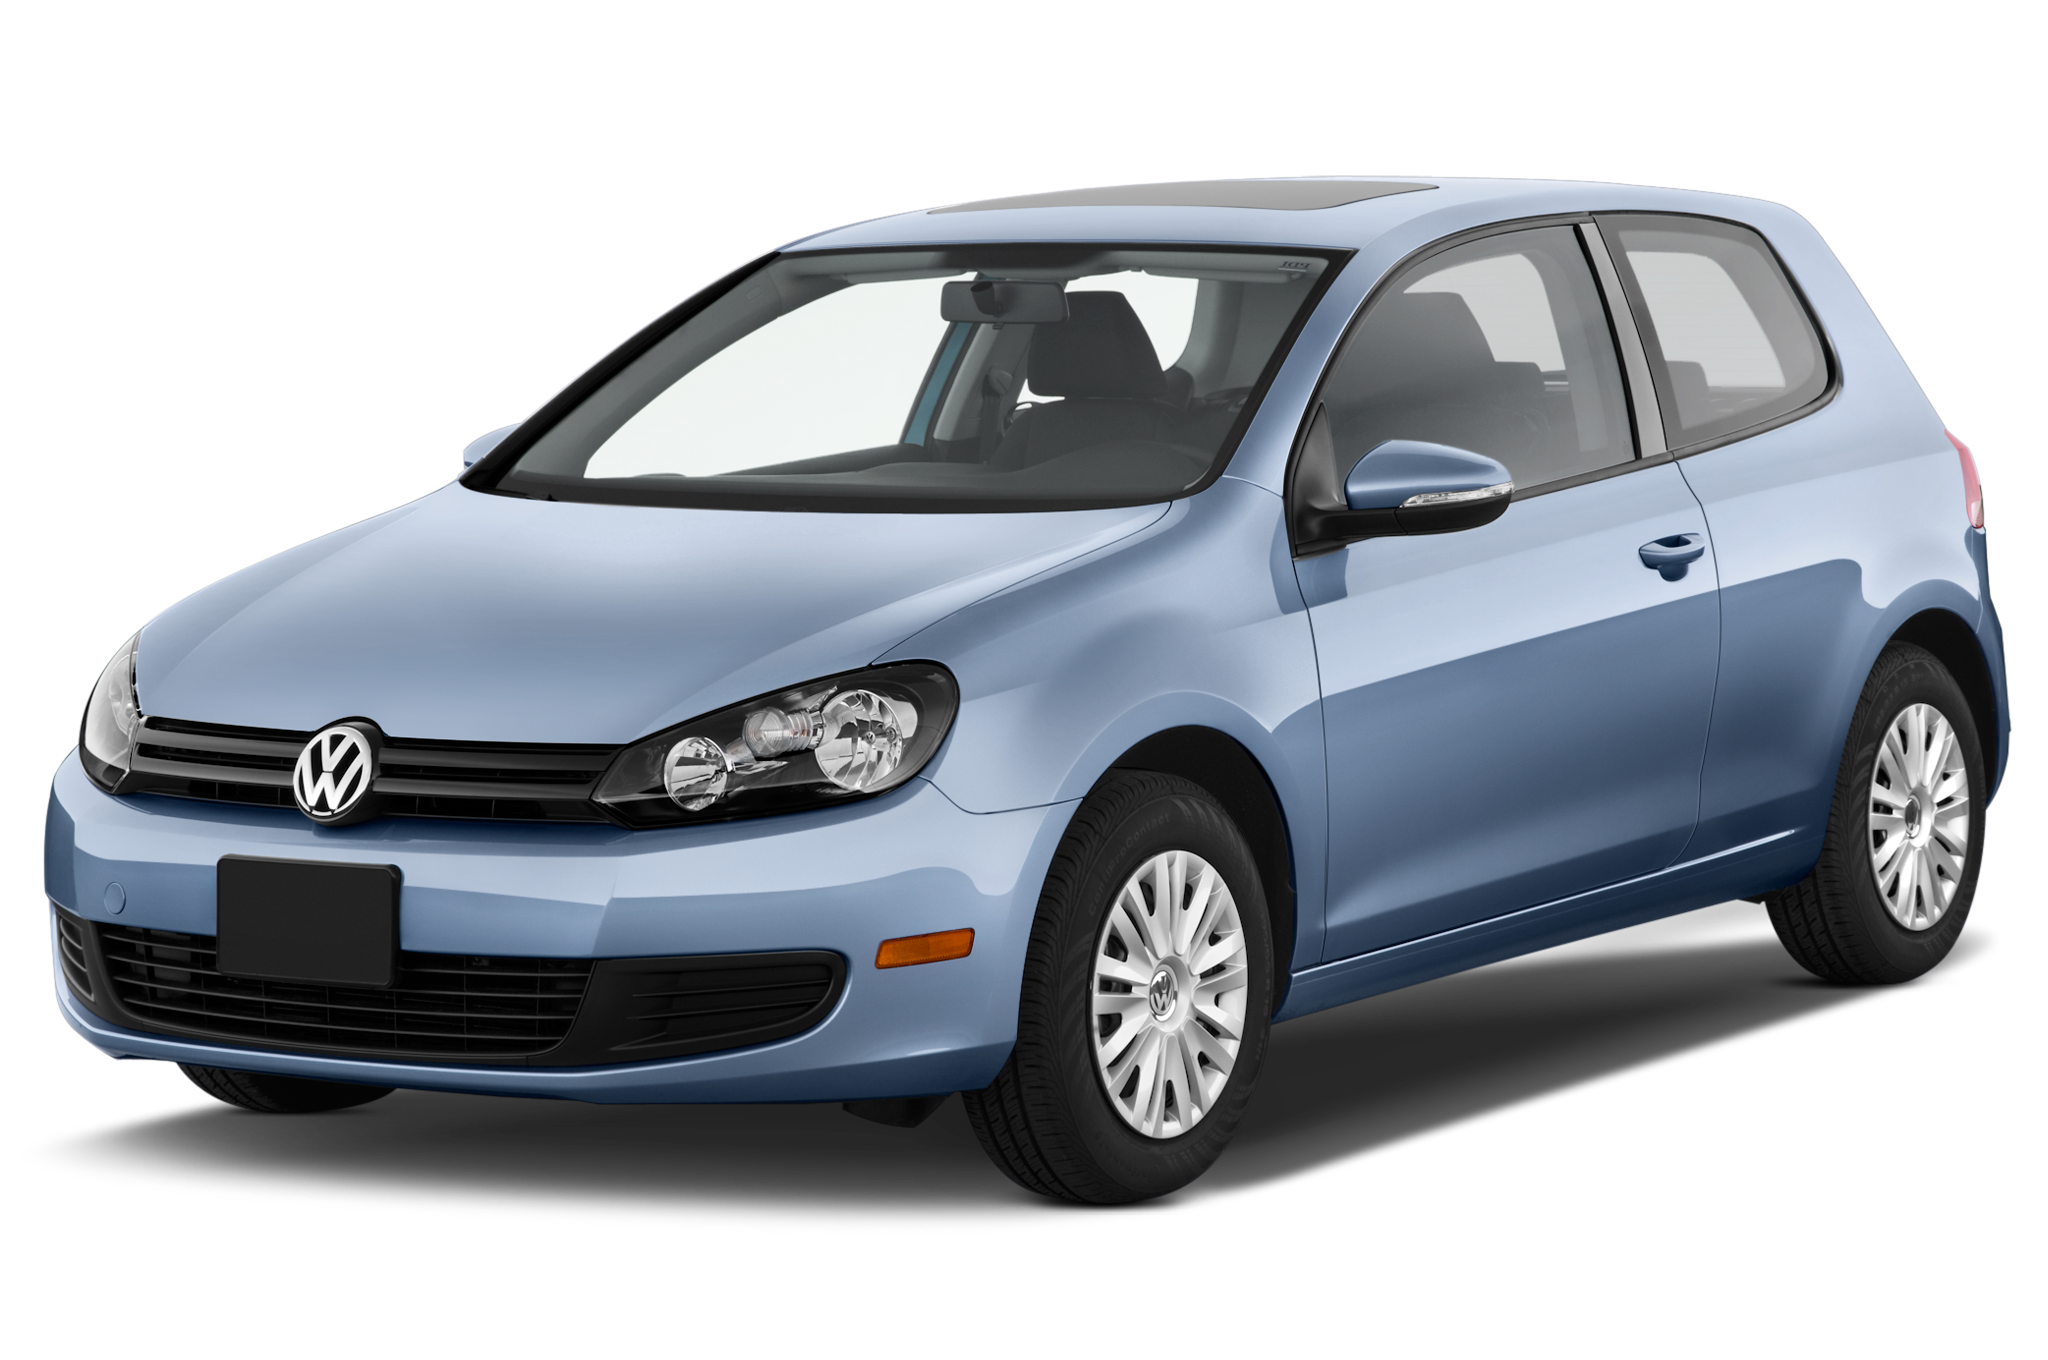 Electrified: Volkswagen Provides Early Information on 2013 E